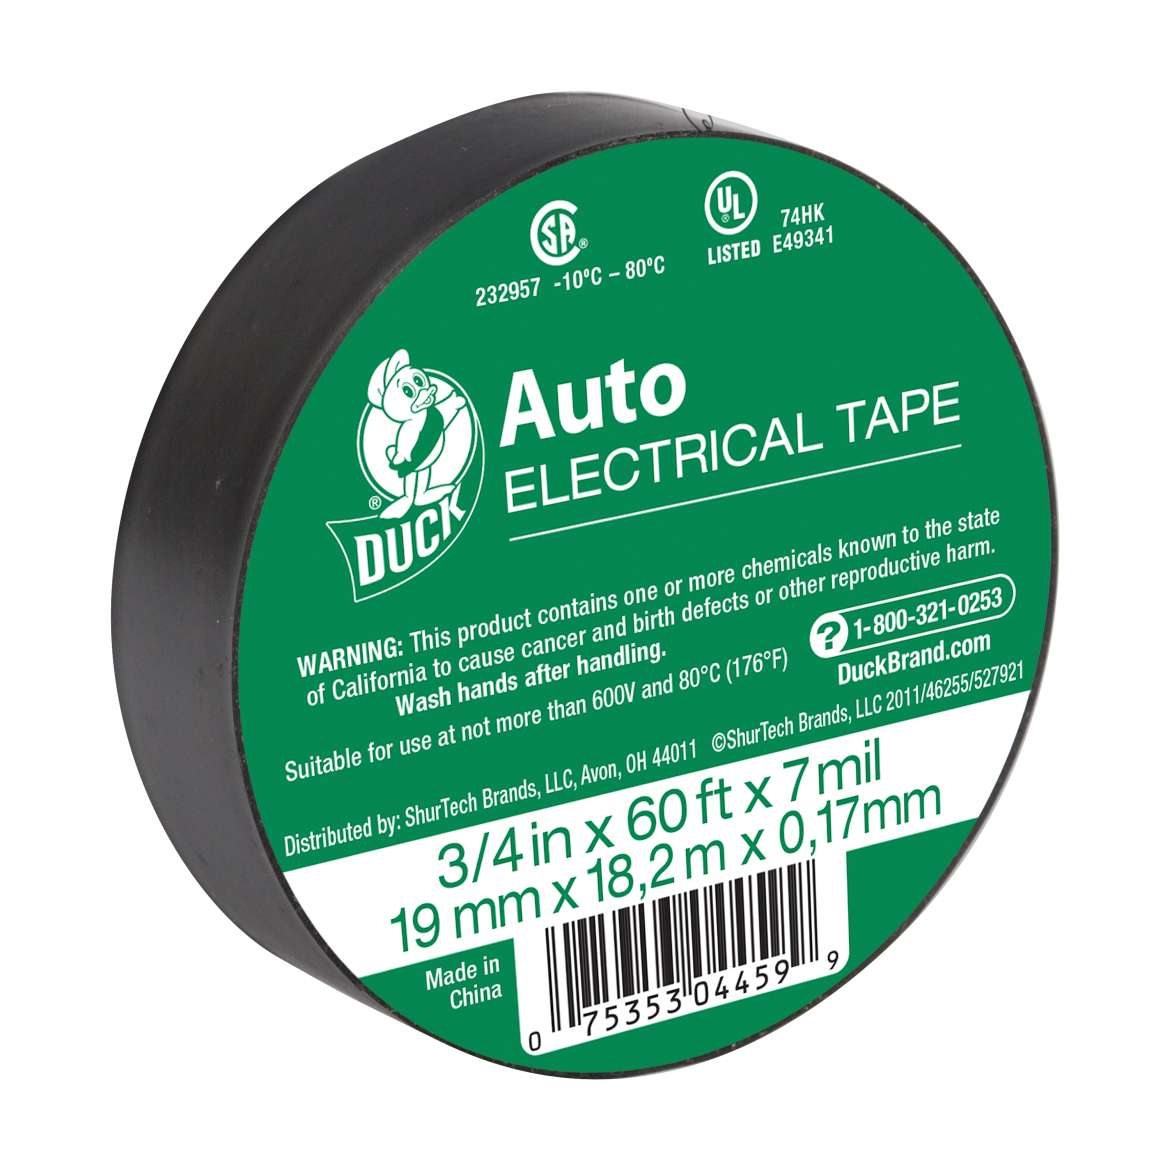 Duck® Brand Auto Electrical Tape - Black, .75 in. x 60 ft. x 7 mil. Image